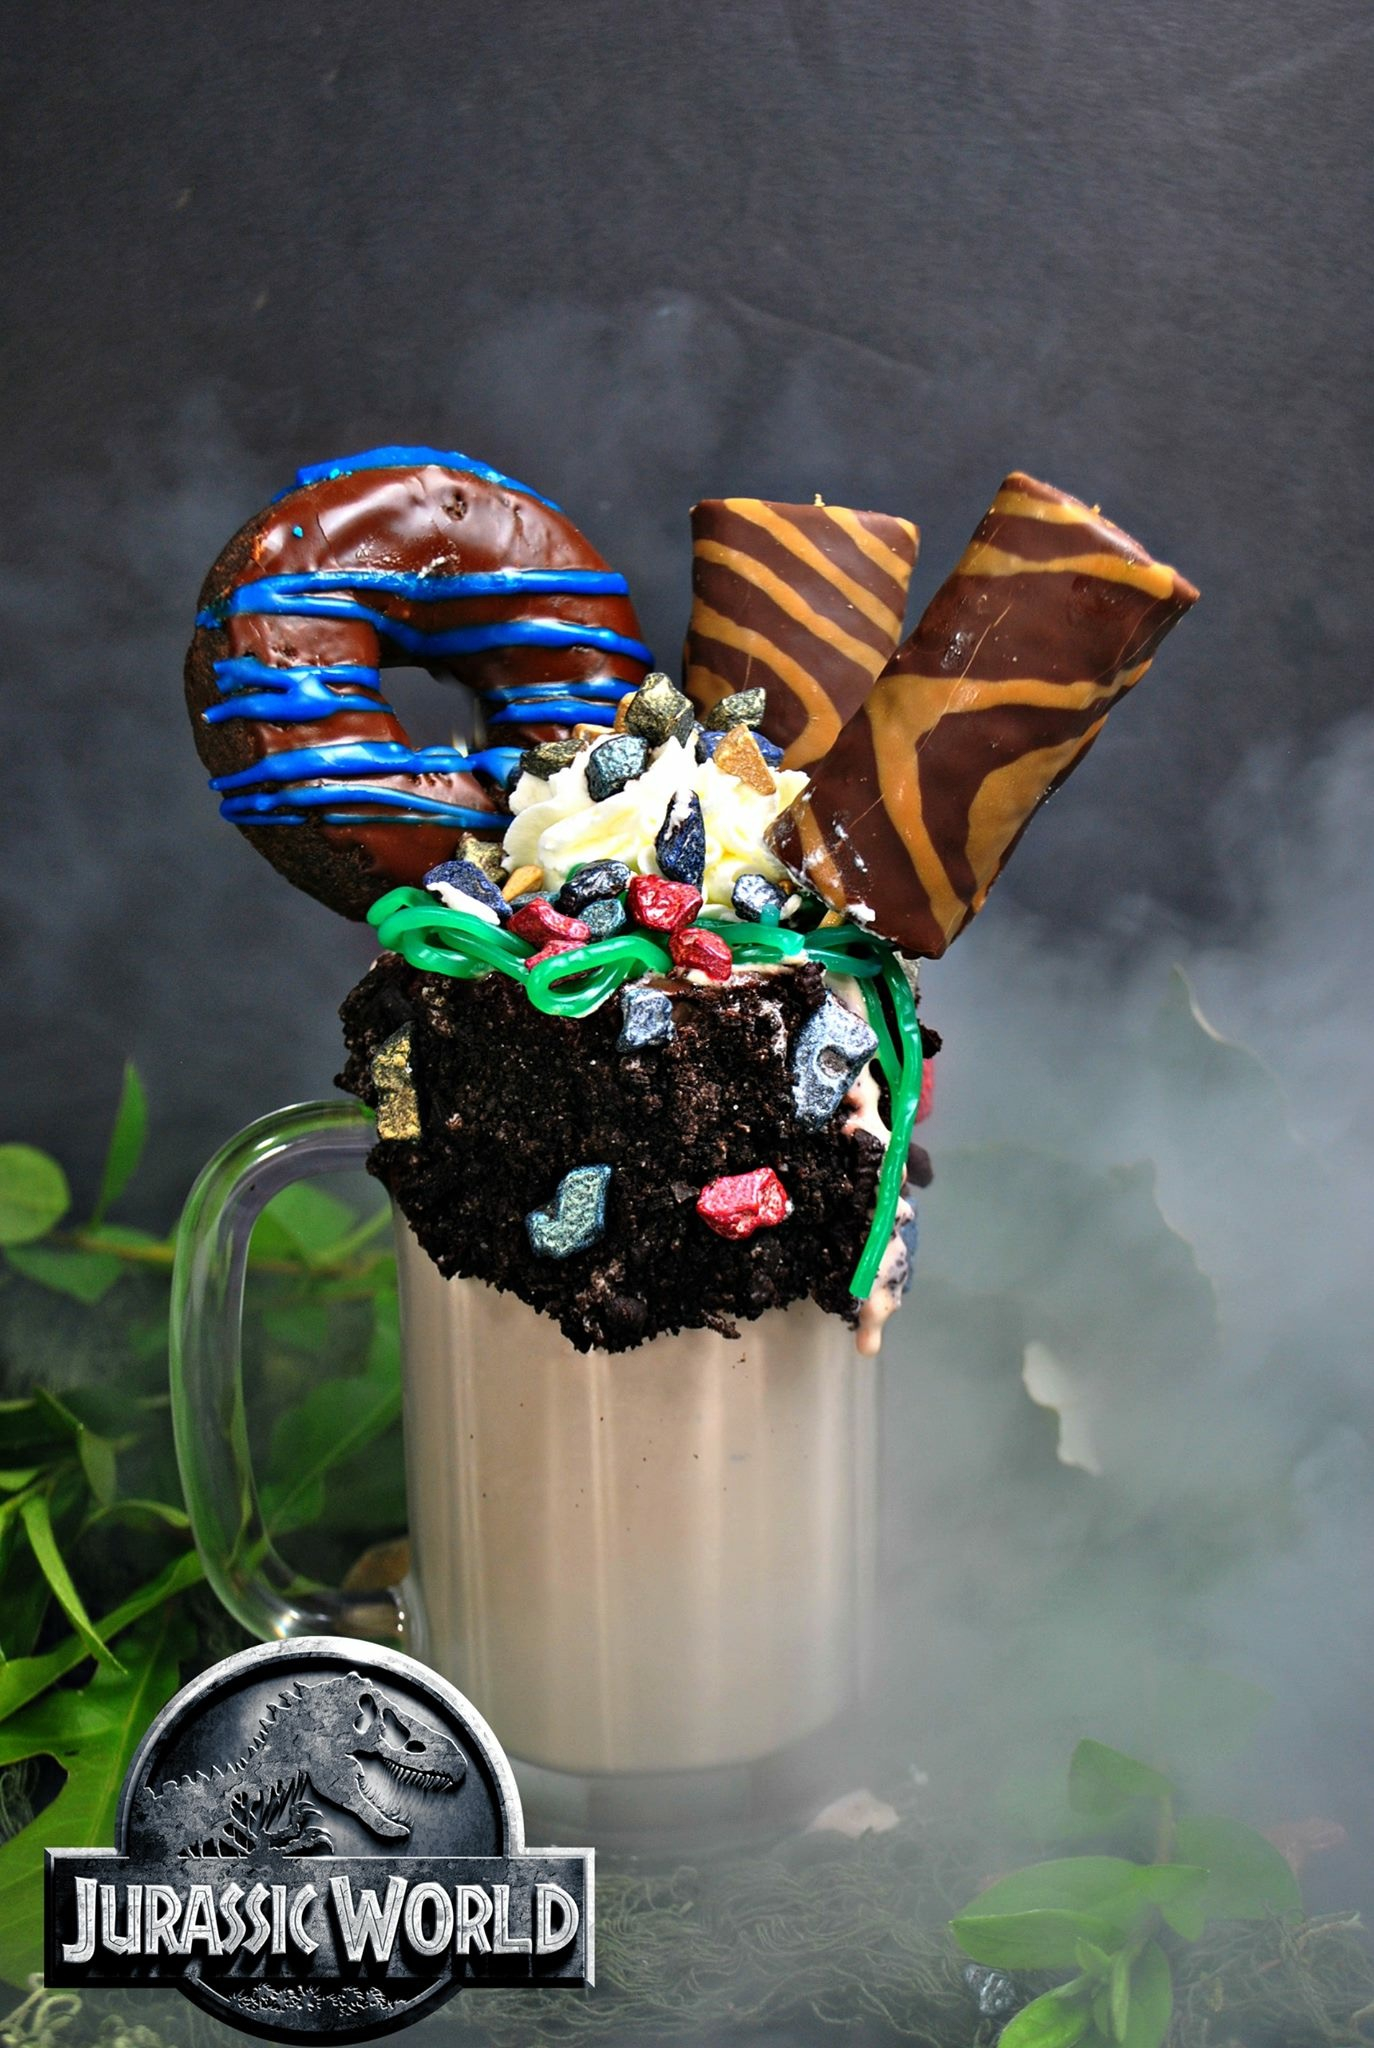 "Inspired by the Jurassic World films, this dinosaur milkshake recipe is over-the-top ""freakshake"" style. Make it with the kid and enjoy together. #JurassicWorld #FallenKingdom #Dinosaur #Freakshake #Milkshake #Dessert"